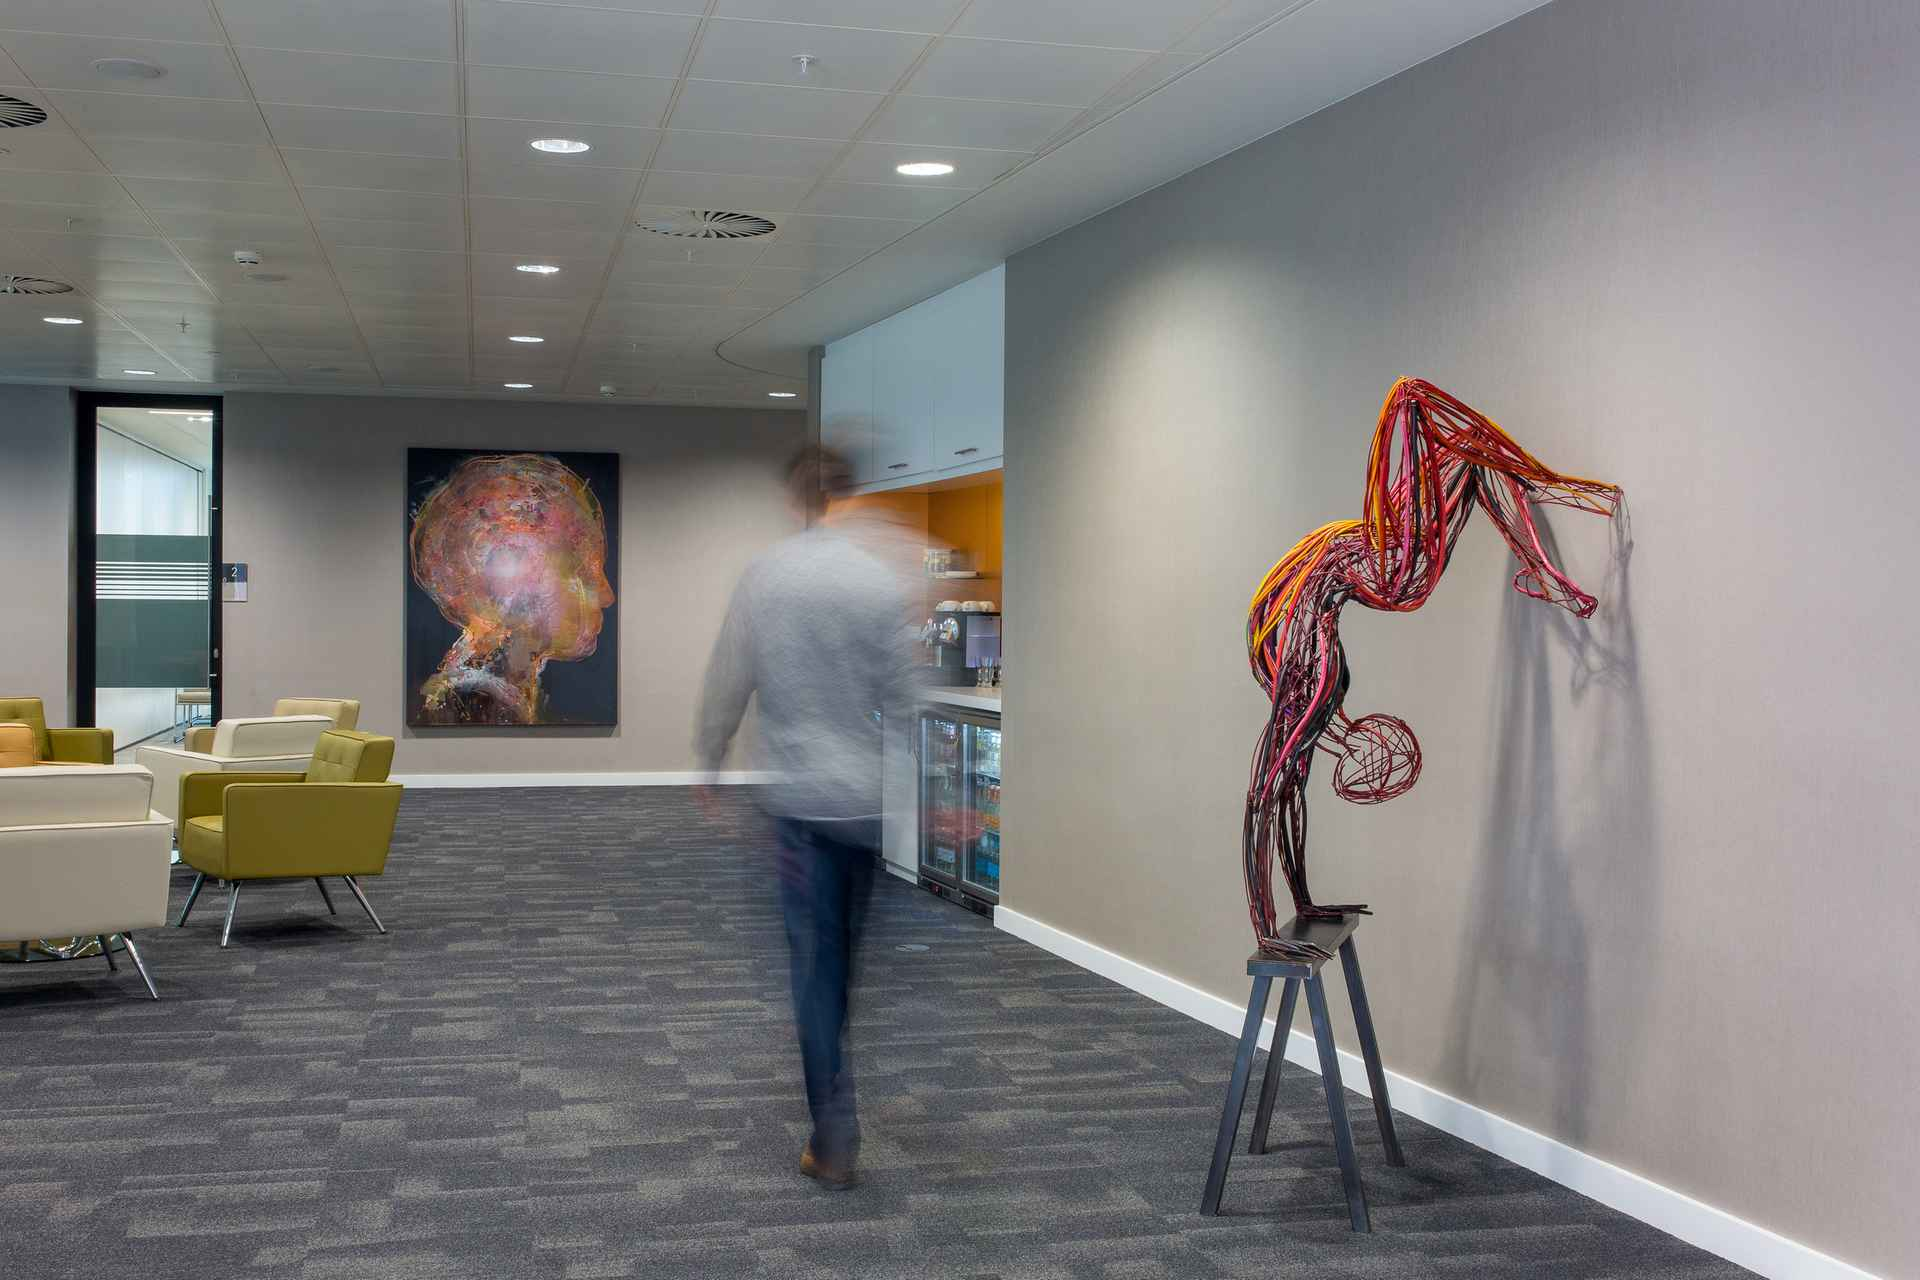 Addleshaw Goddard - Waiting clients can appreciate and enjoy cutting edge contemporary art